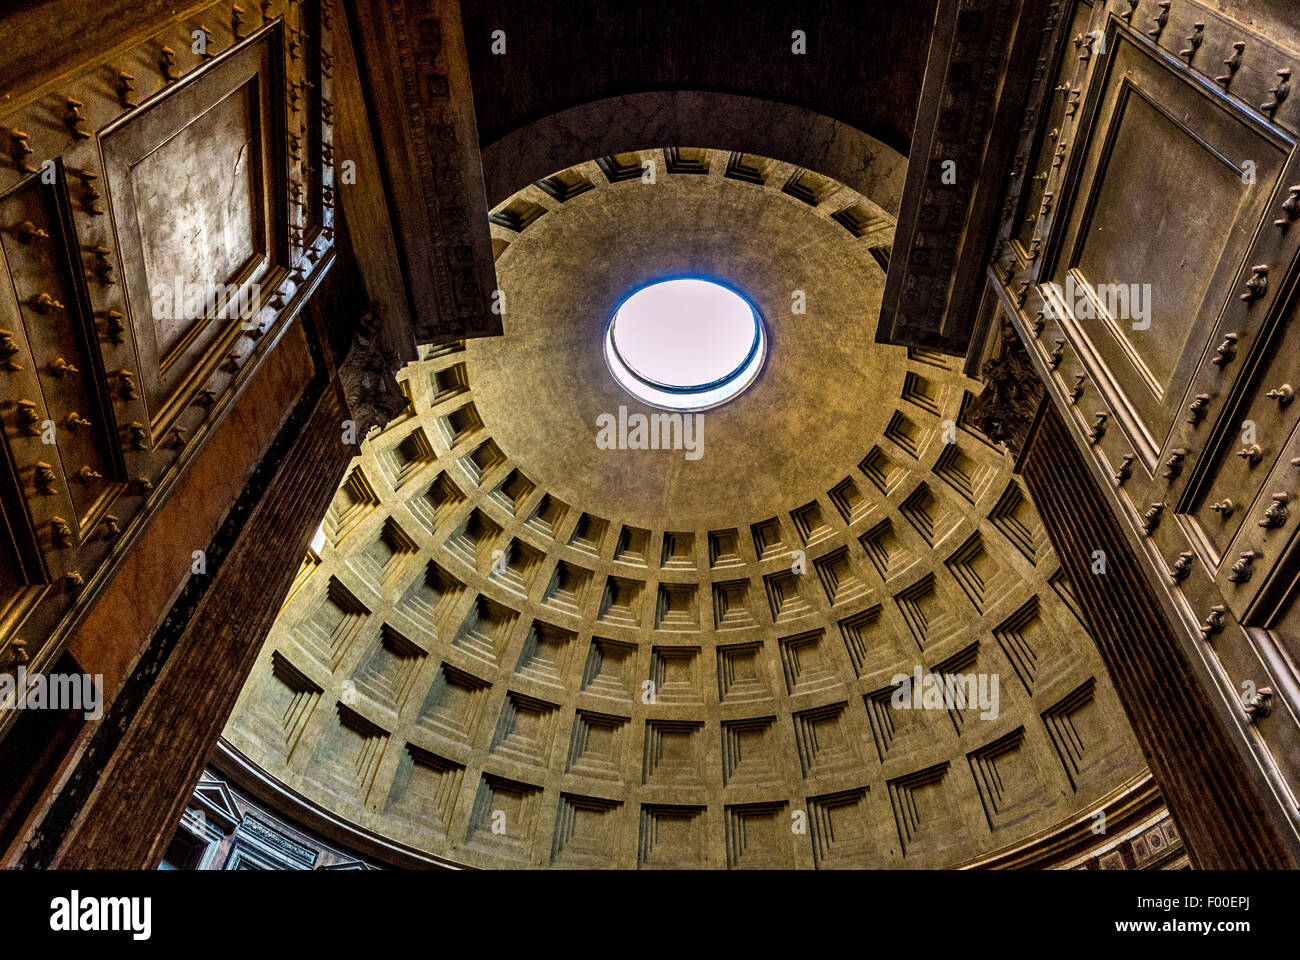 Doors opening into Oculus interior. The Pantheon. Ancient Roman Temple. Now a Christian church. Rome, Italy. - Stock Image